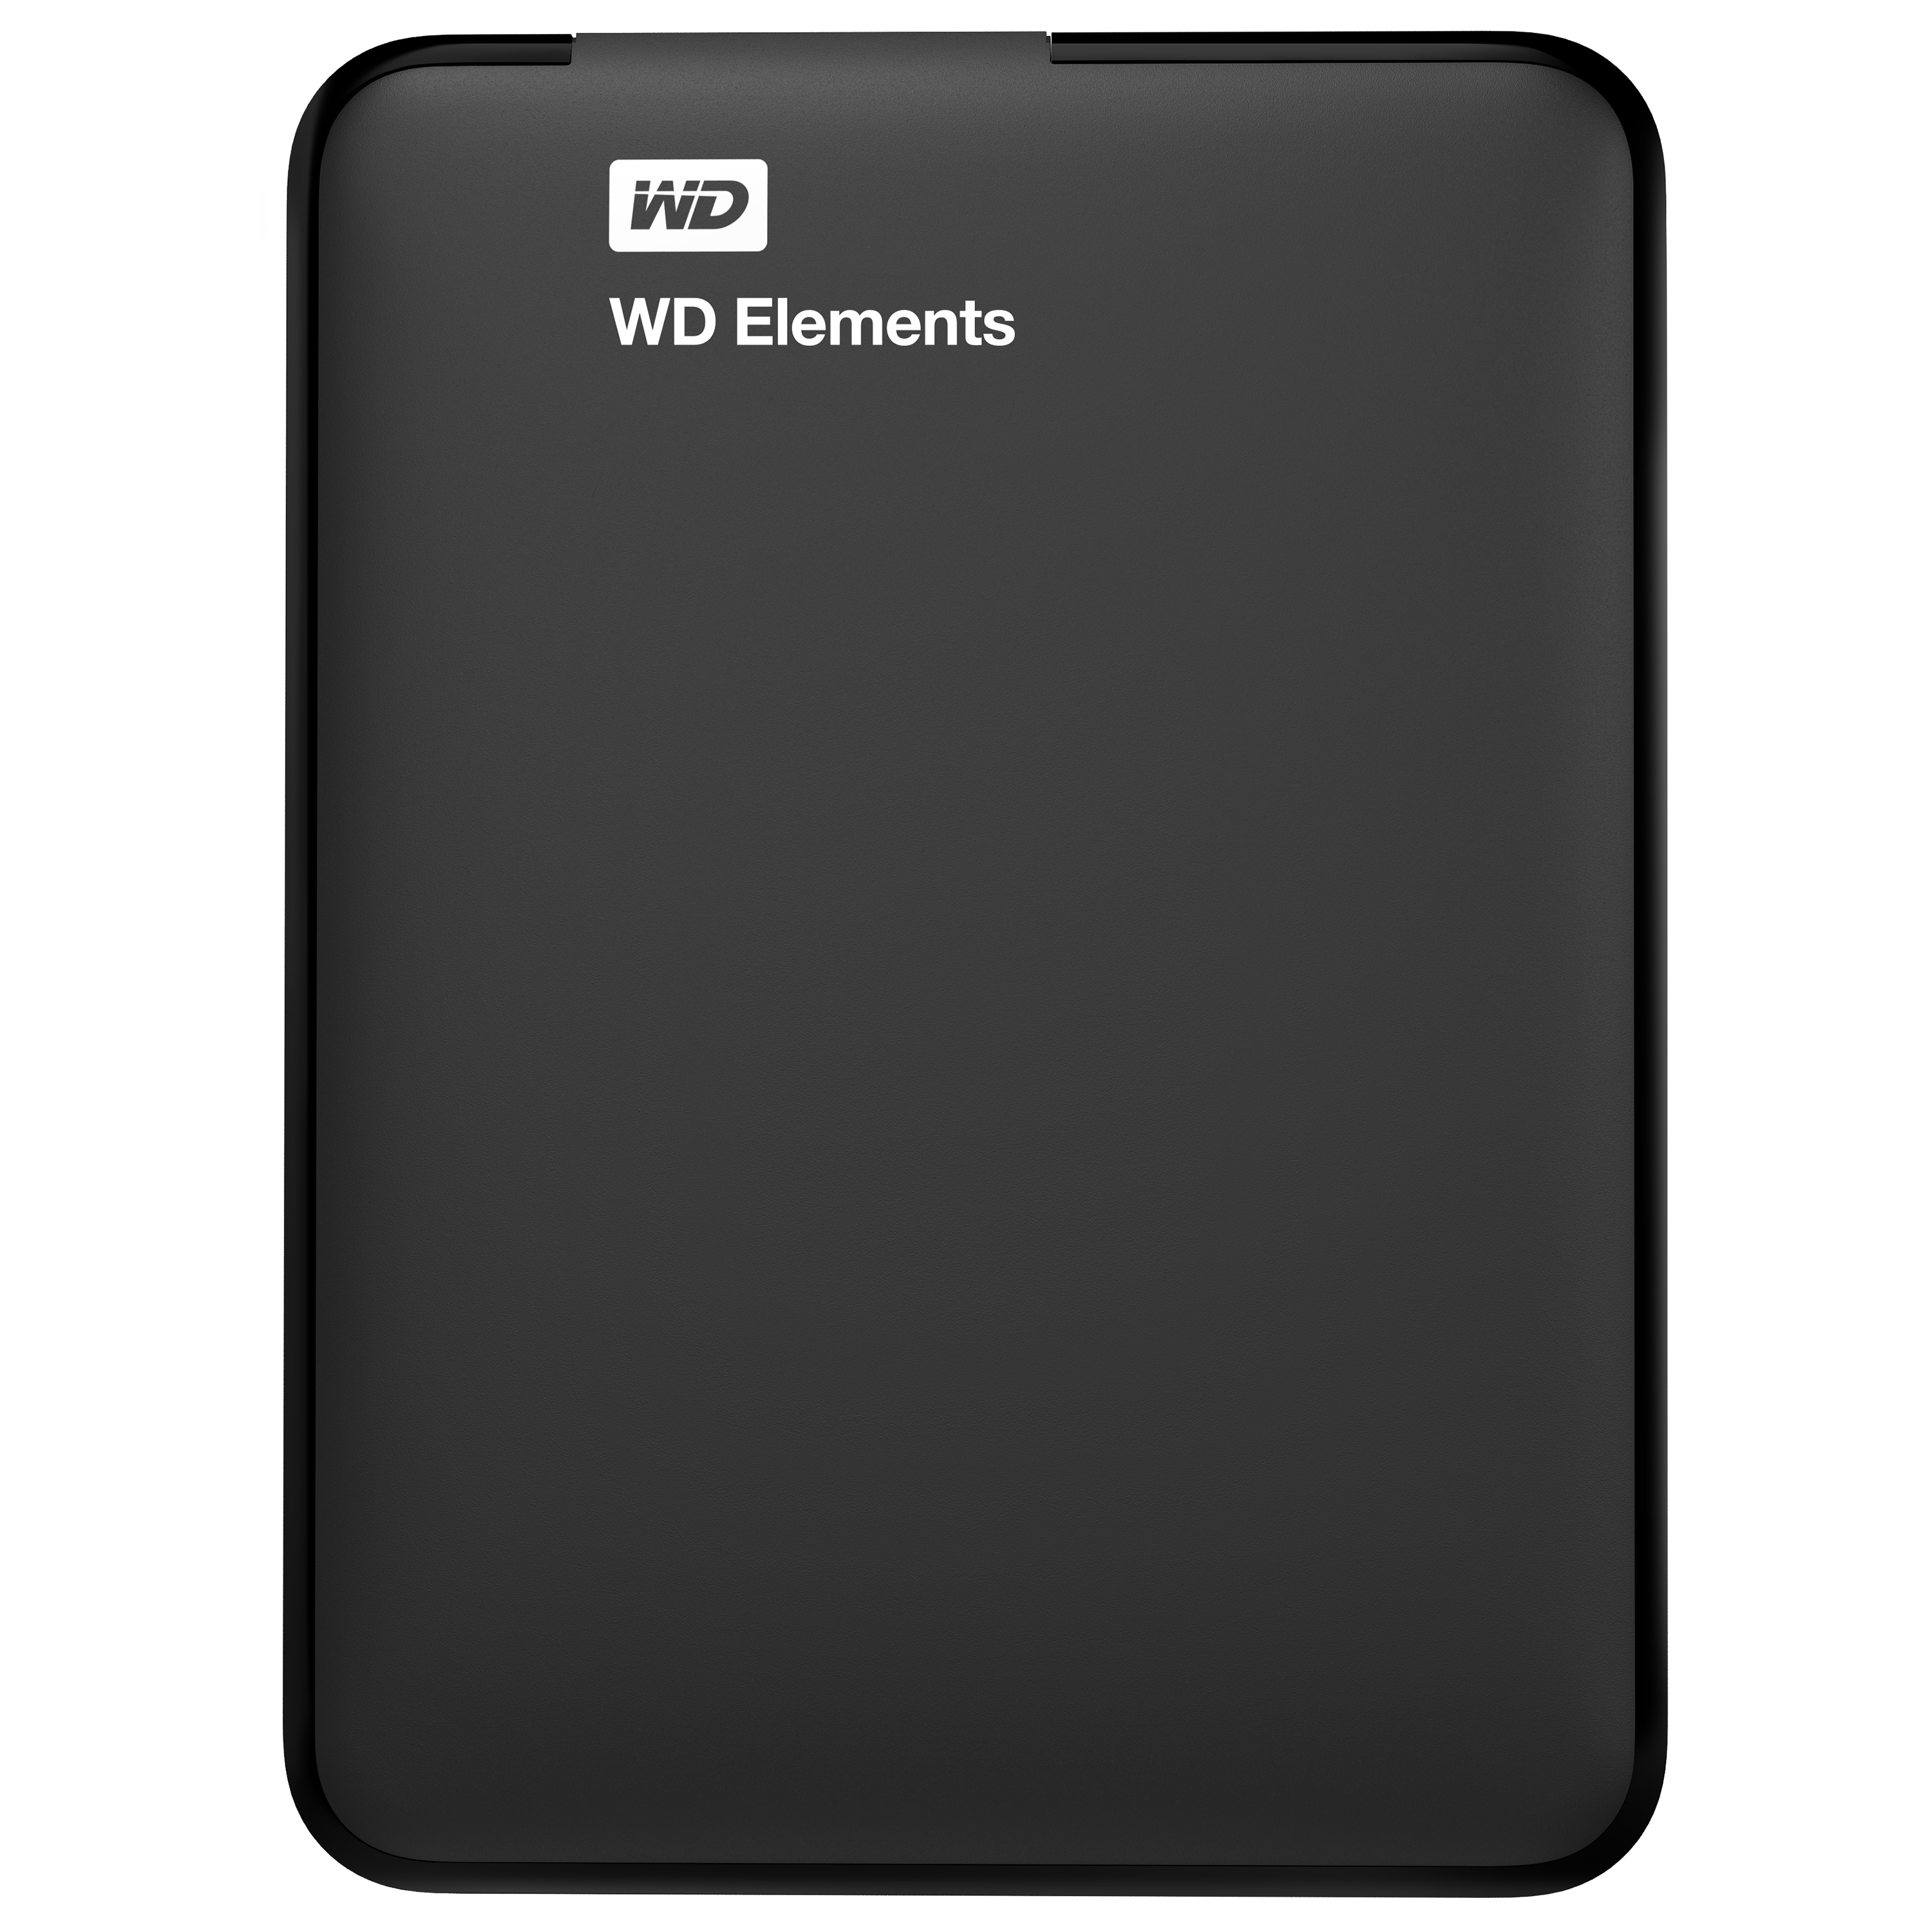 HD W.DIGITAL ELEM. 2TB 2.5 USB 3.0